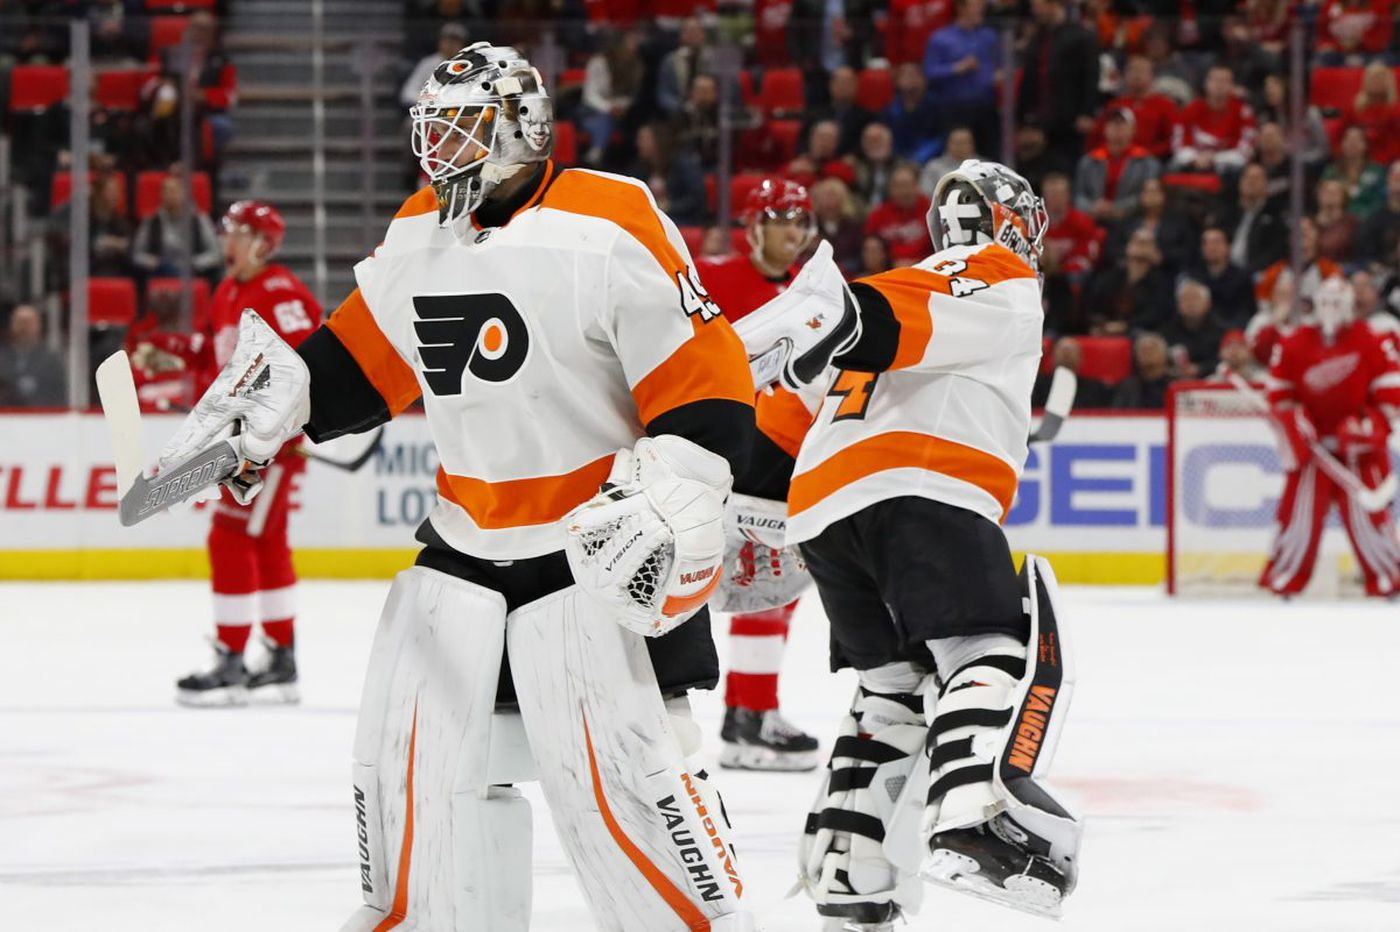 Red Wings 5, Flyers 4: Philly again plays down to its competition